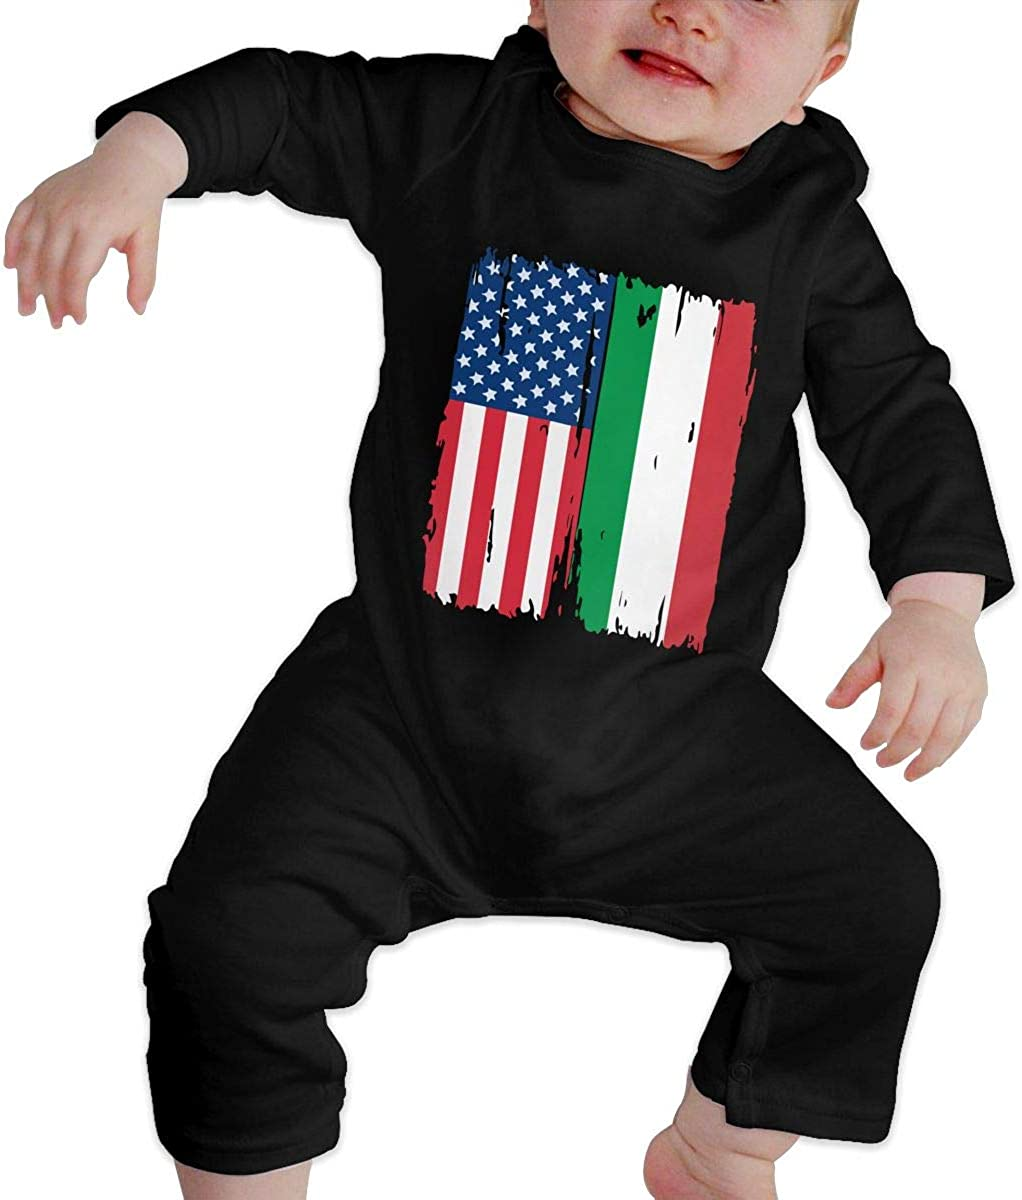 BKNGDG8Q Unisex Baby Romper Jumpsuit American Italian Flag Organic One-Piece Bodysuits Coverall Outfits